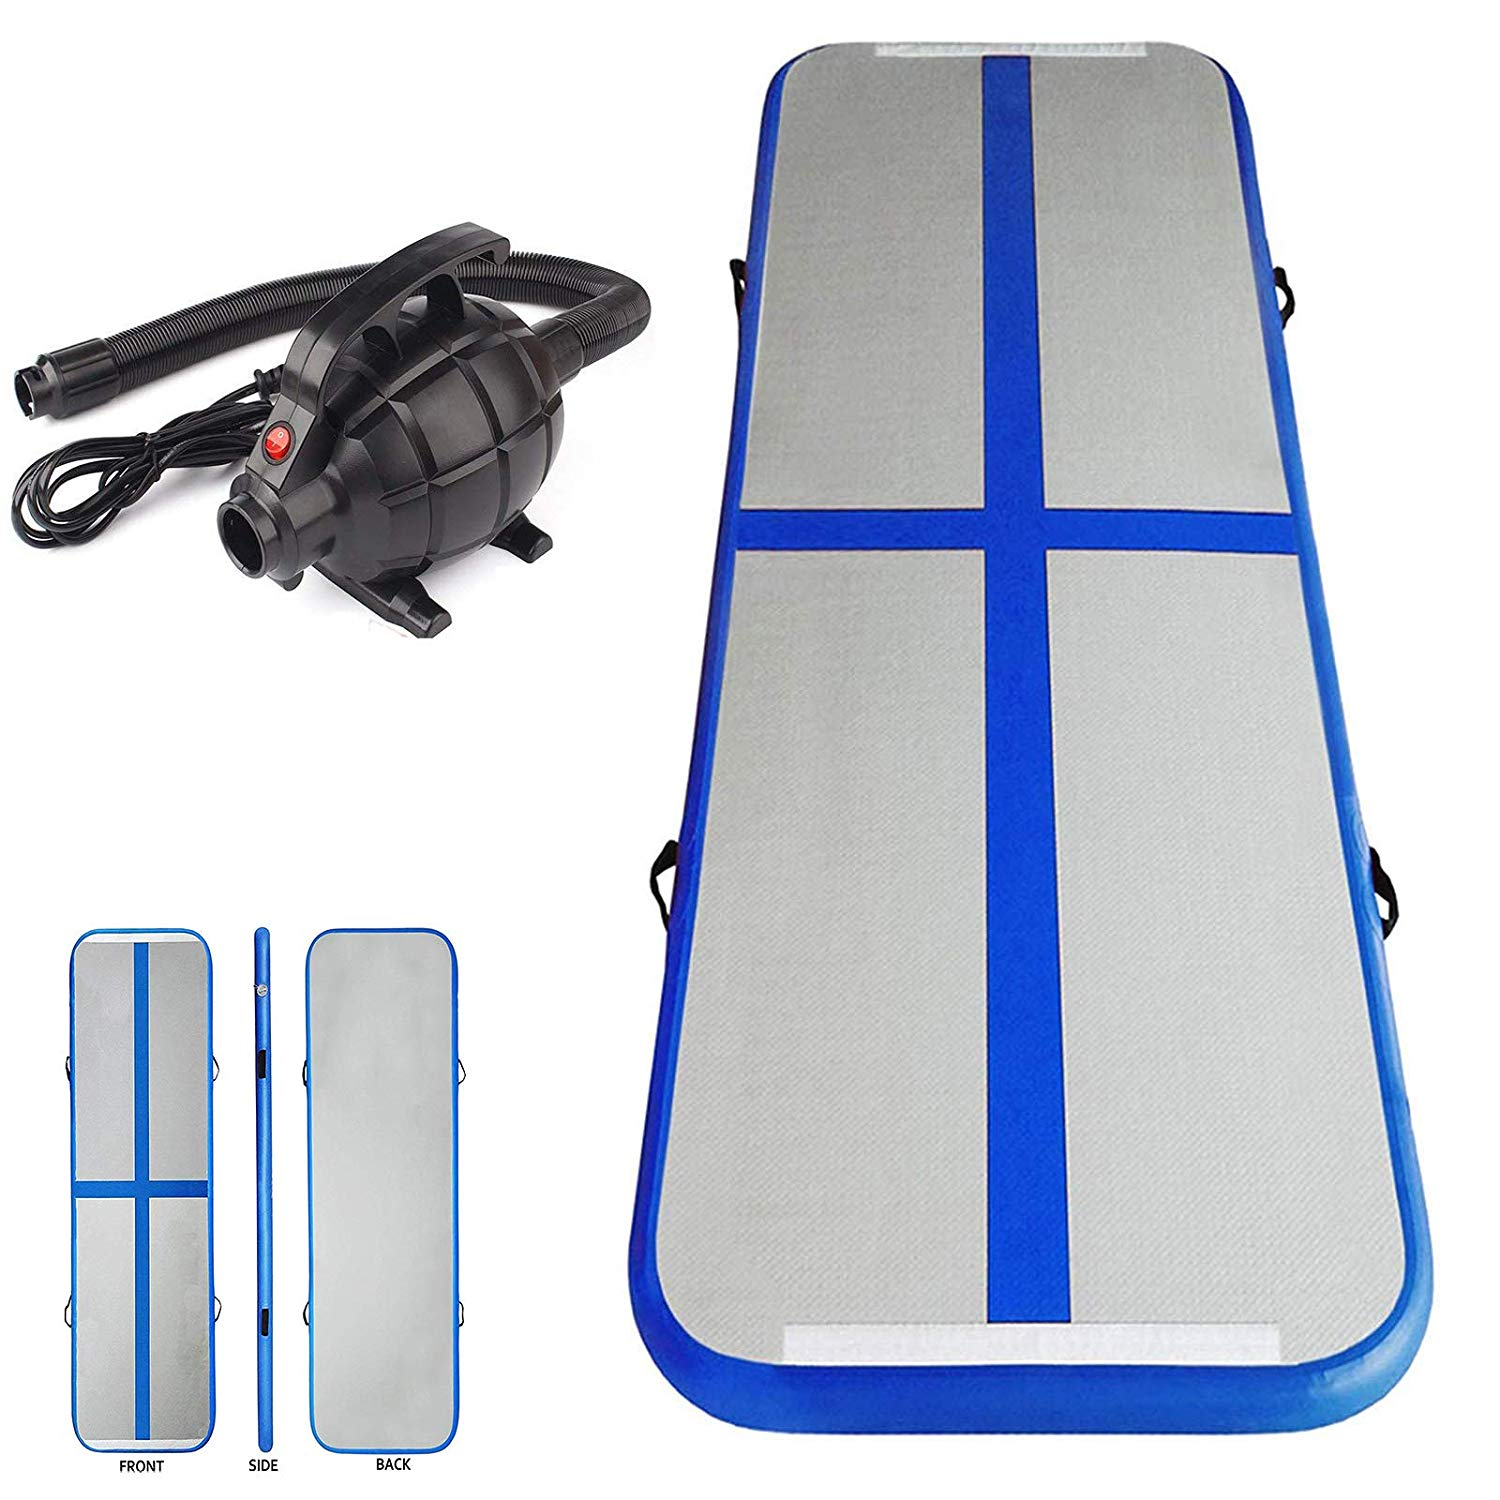 Multiple Sizes Inflatable Air Track Mat Tumbling Floor Home Gymnastics Mat Blue with Electric Pump